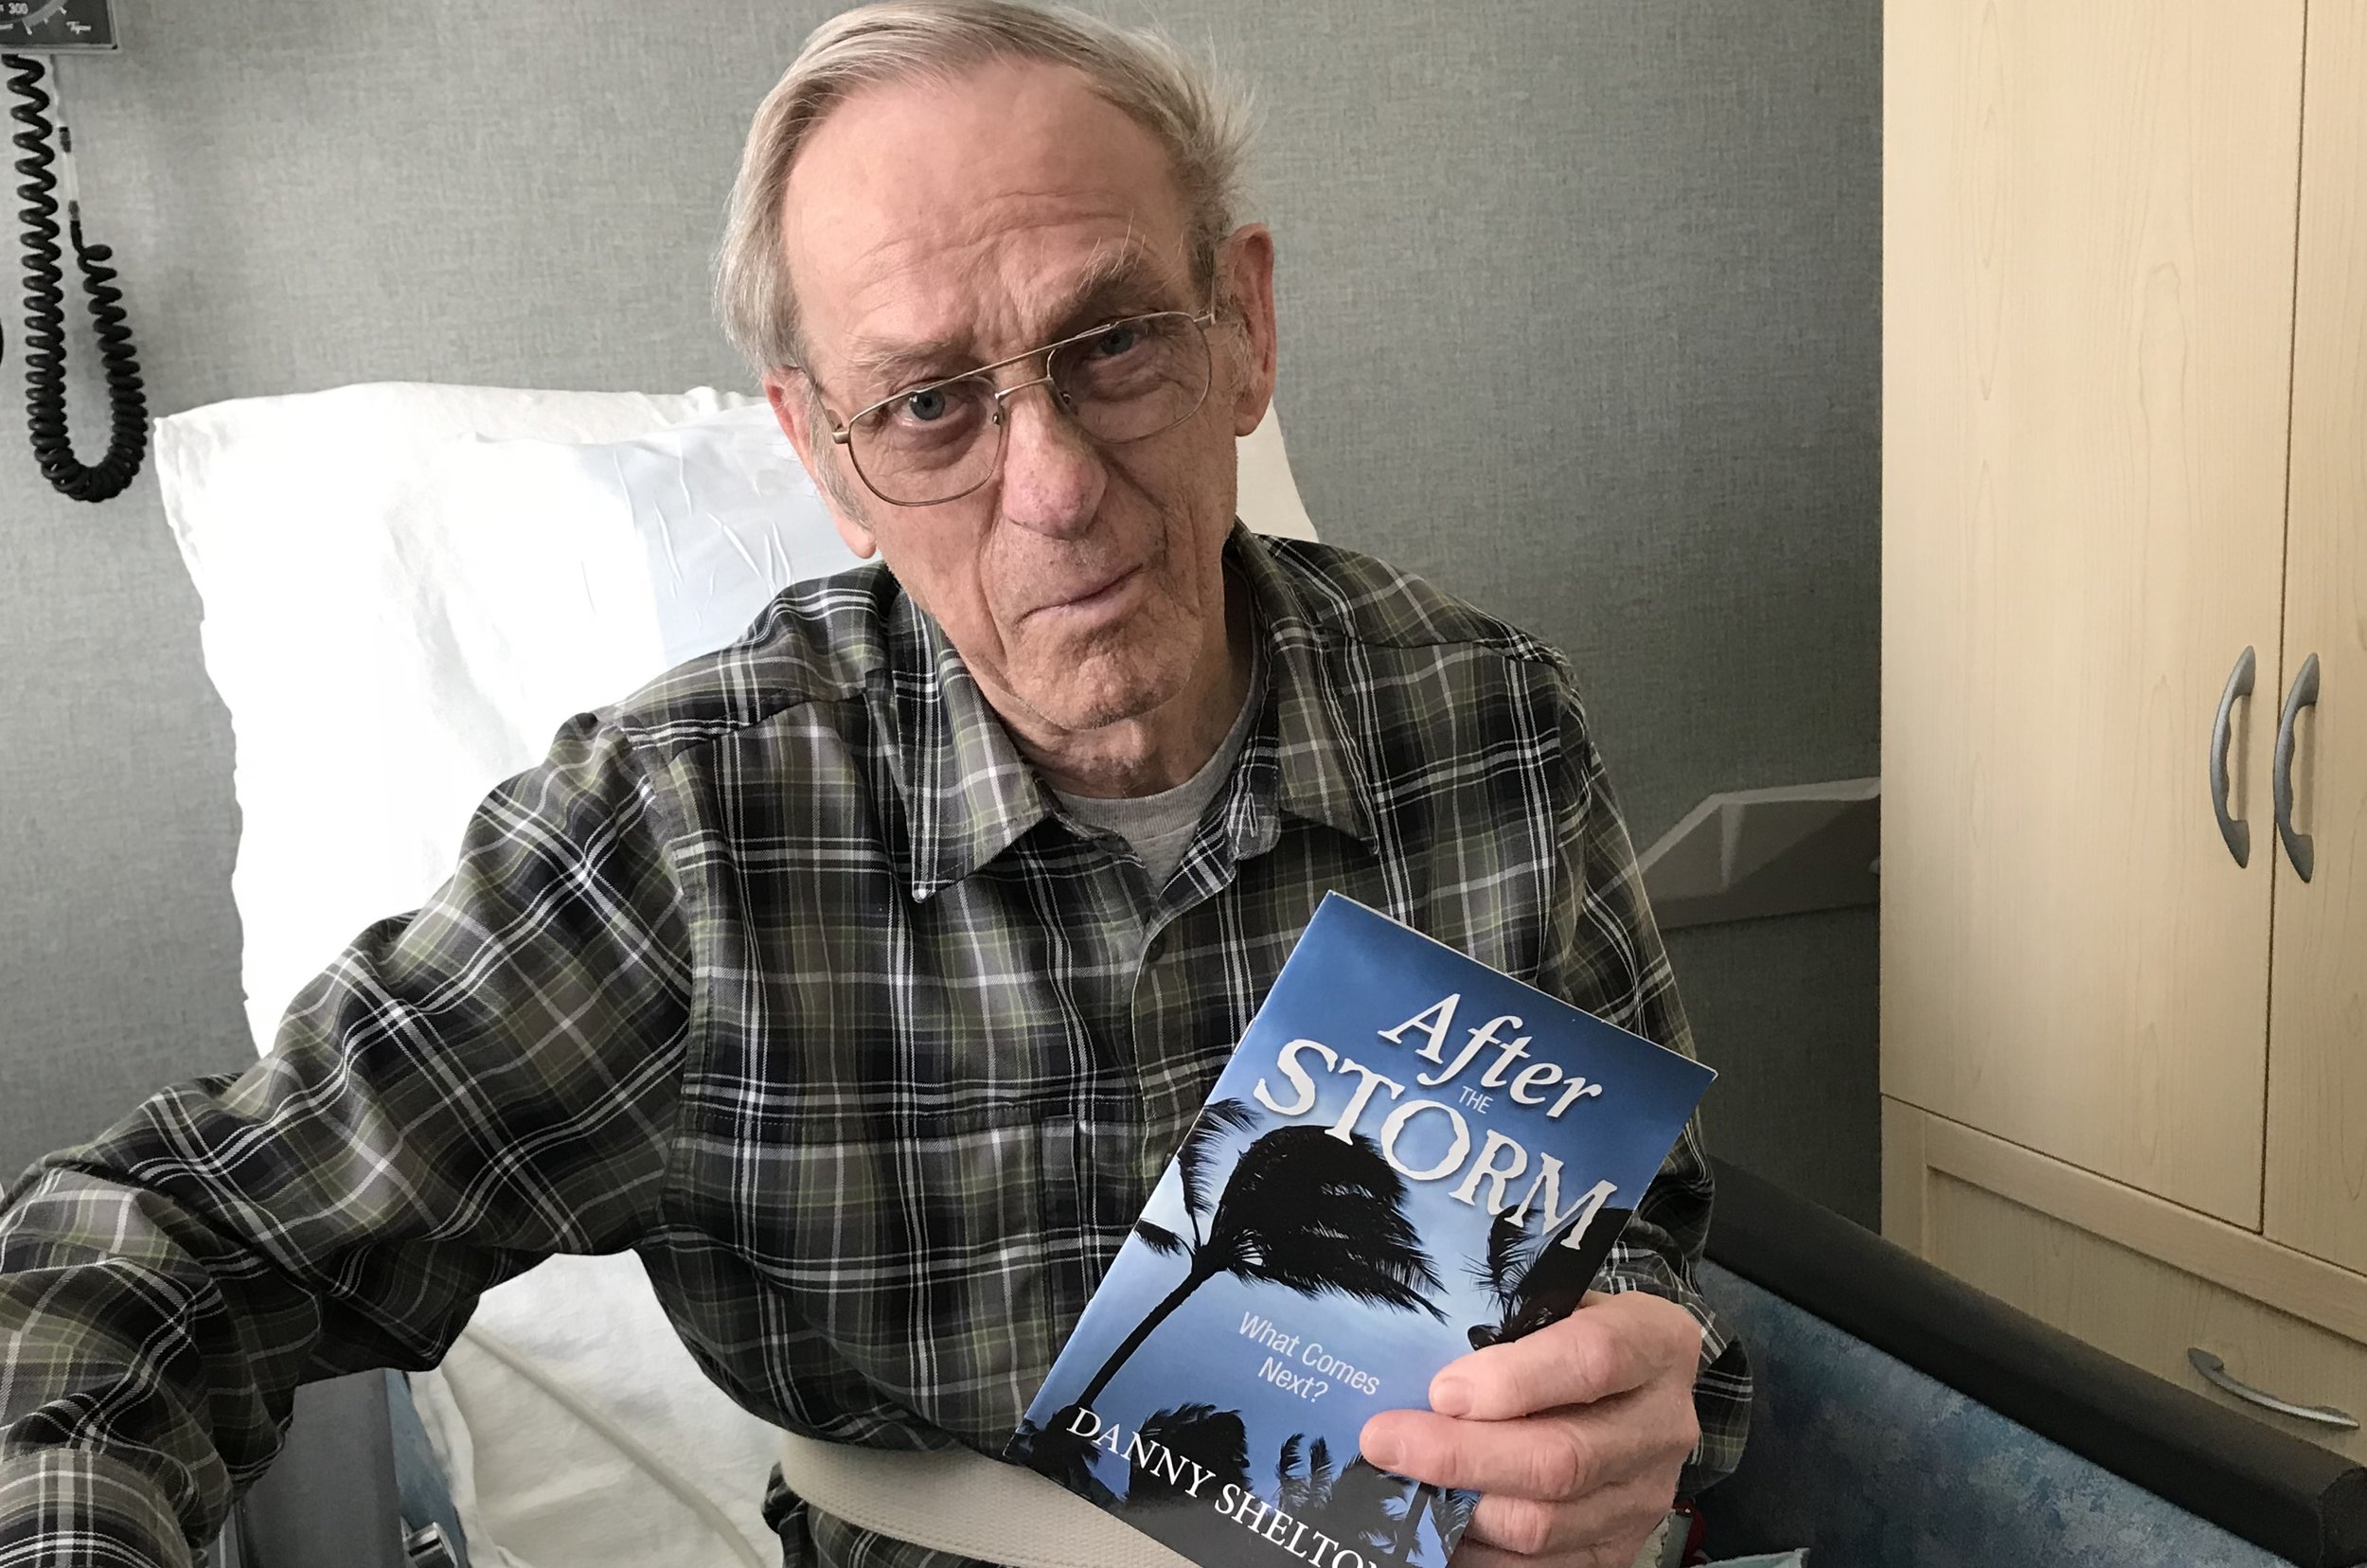 Fred Buchholz, a Deacon the Raymond Seventh-day Adventist Church,at the hospital with tract in hand.